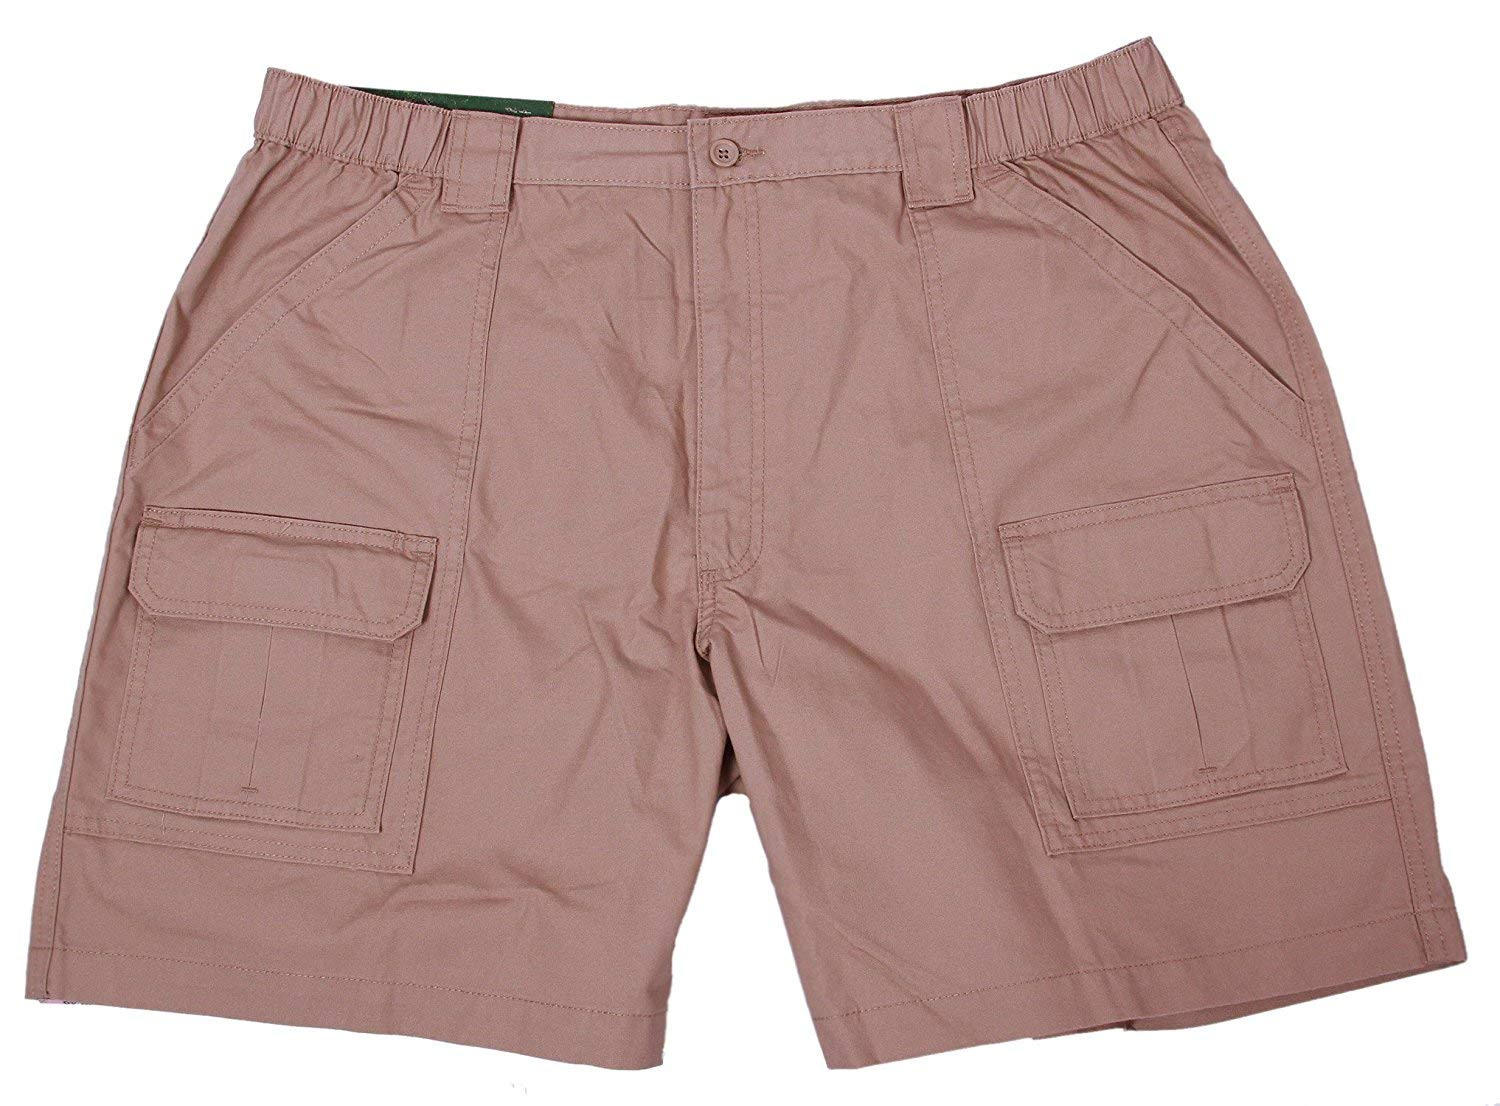 Savane Mens Comfort Hiking Cargo Shorts (32, Khaki 2), Khaki 2, Size 32 V4kp by Savane